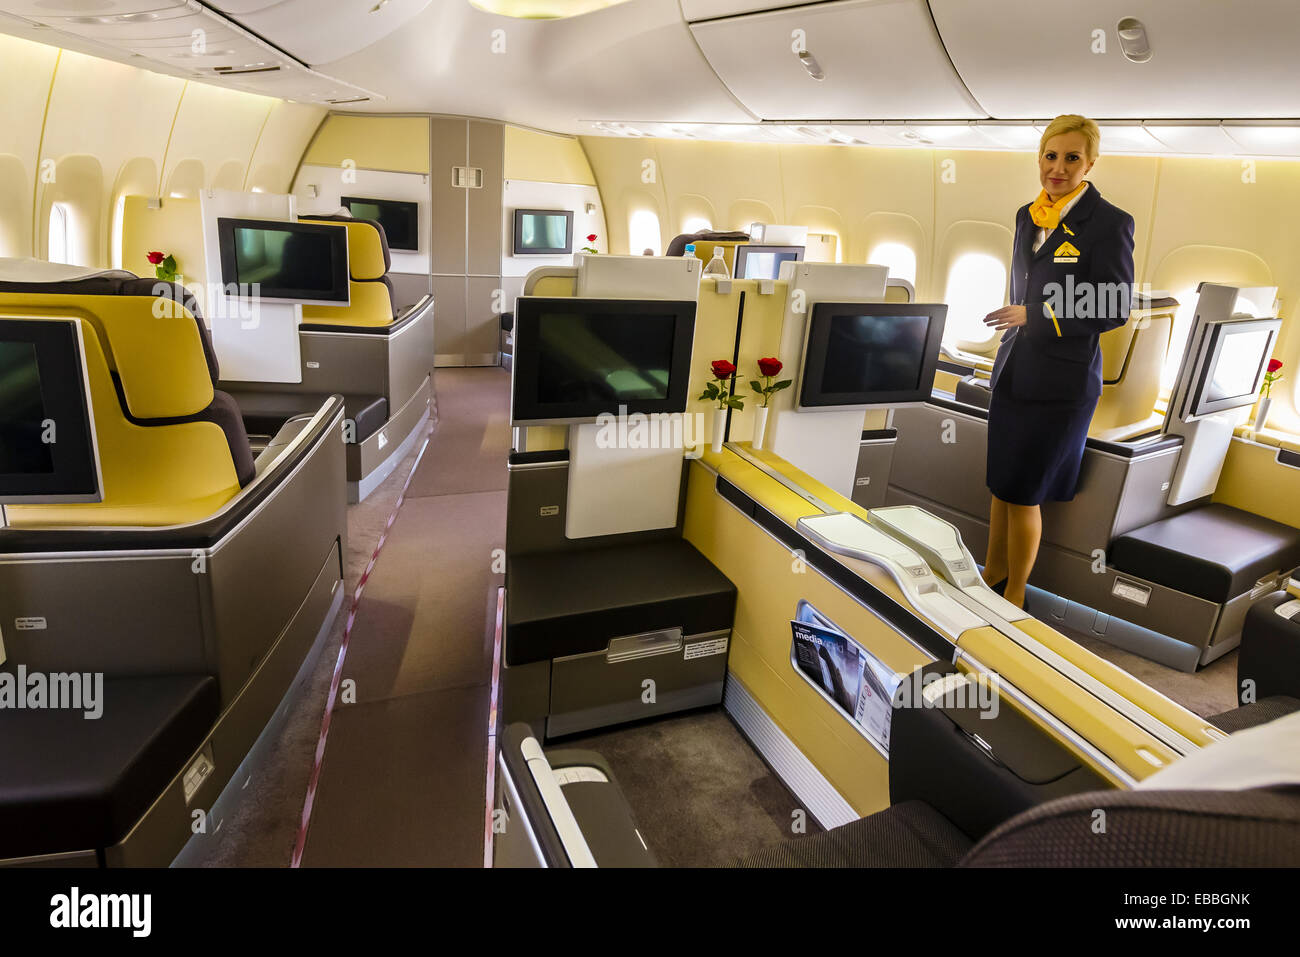 First class cabin of a Lufthansa 747 jet at Frankfurt Airport Germany. - Stock Image